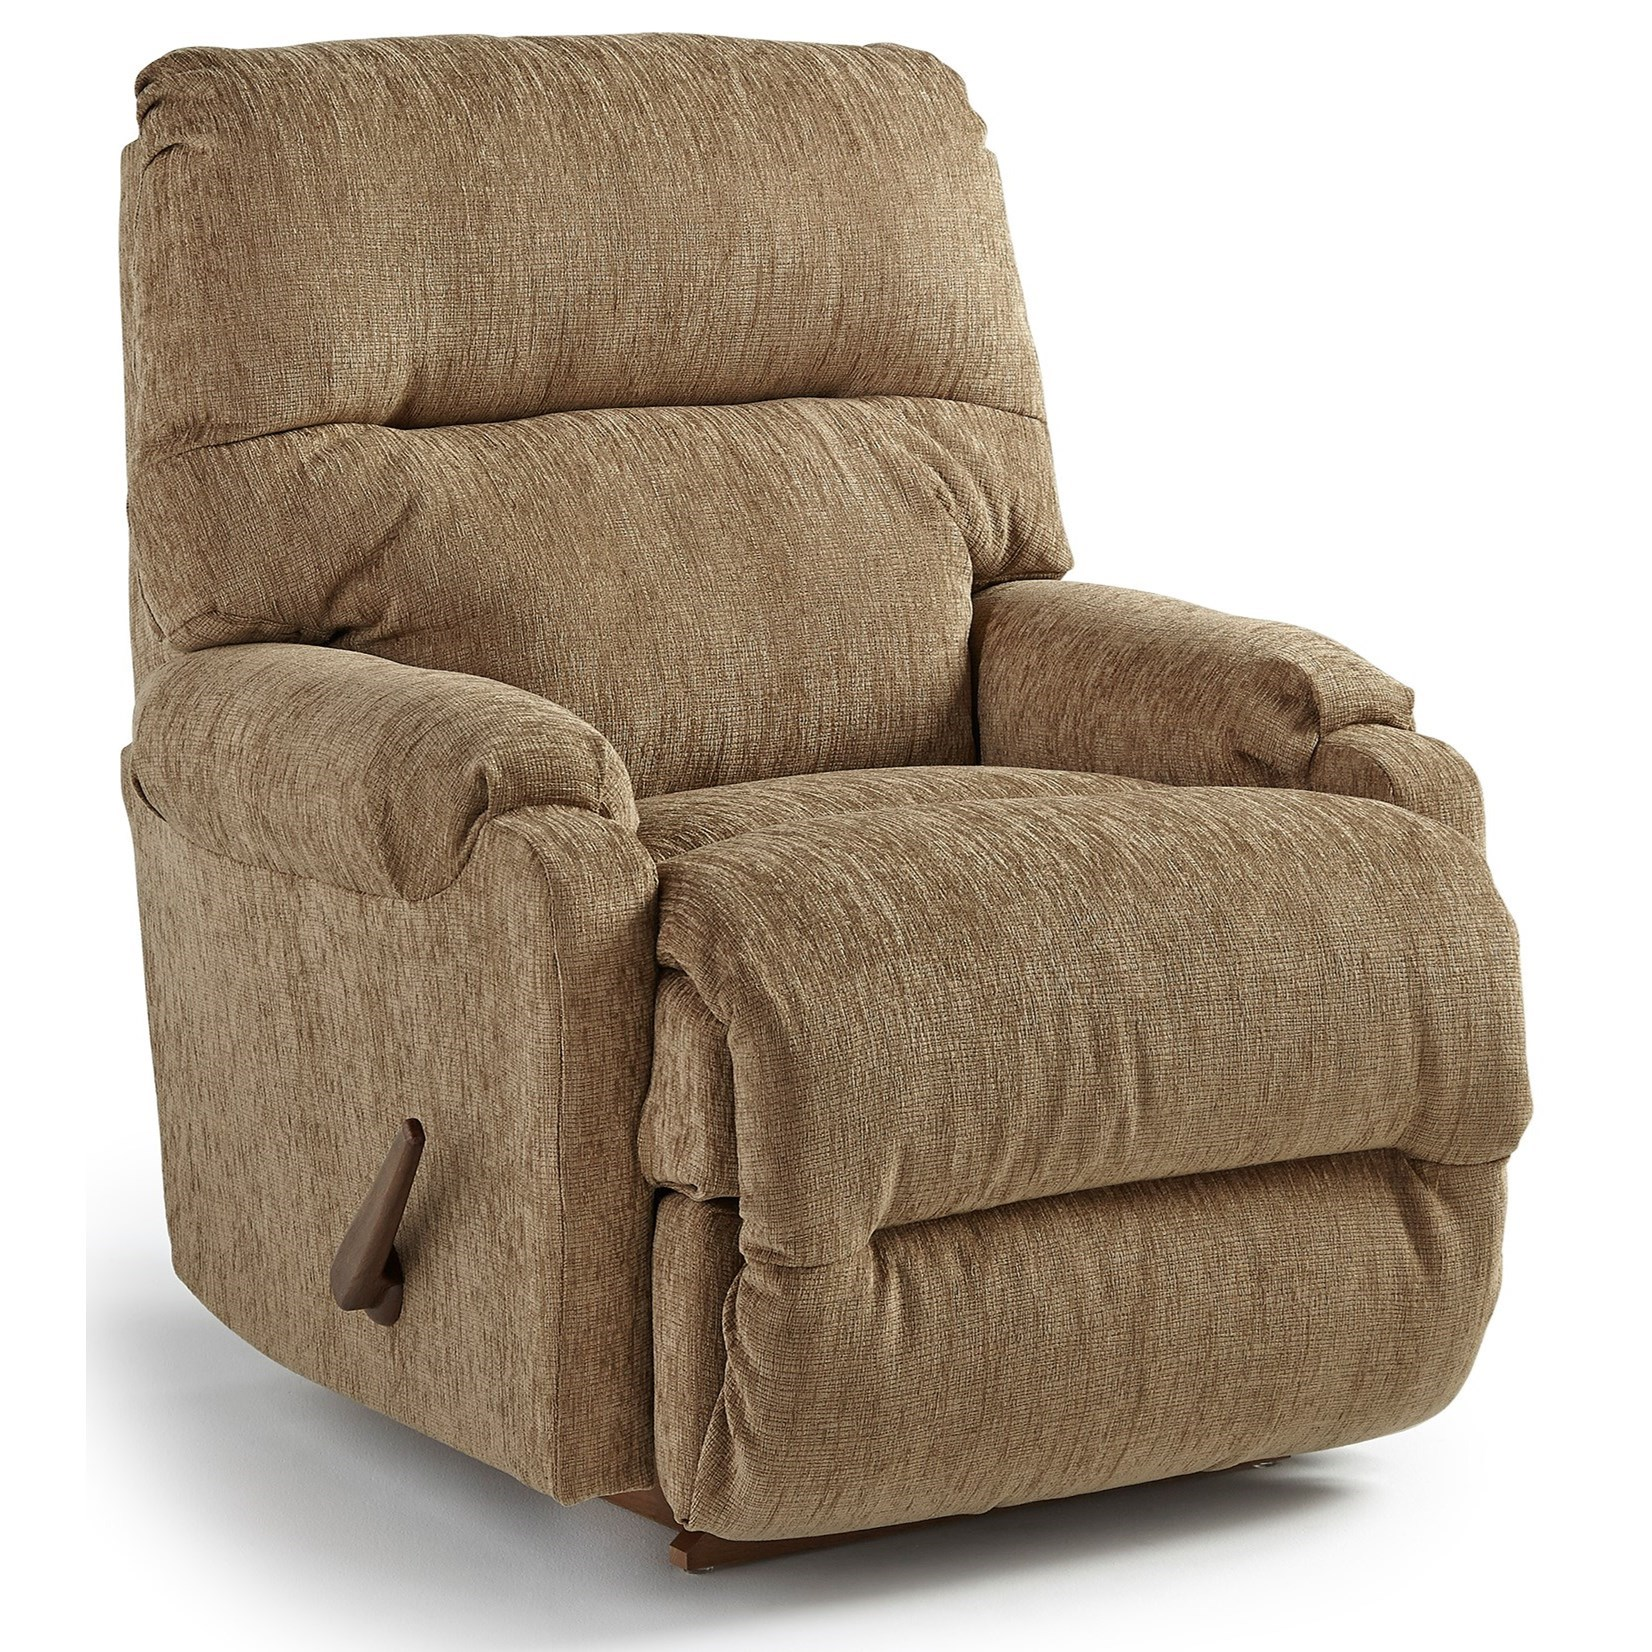 Cannes Swivel Glider Recliner by Best Home Furnishings at Baer's Furniture